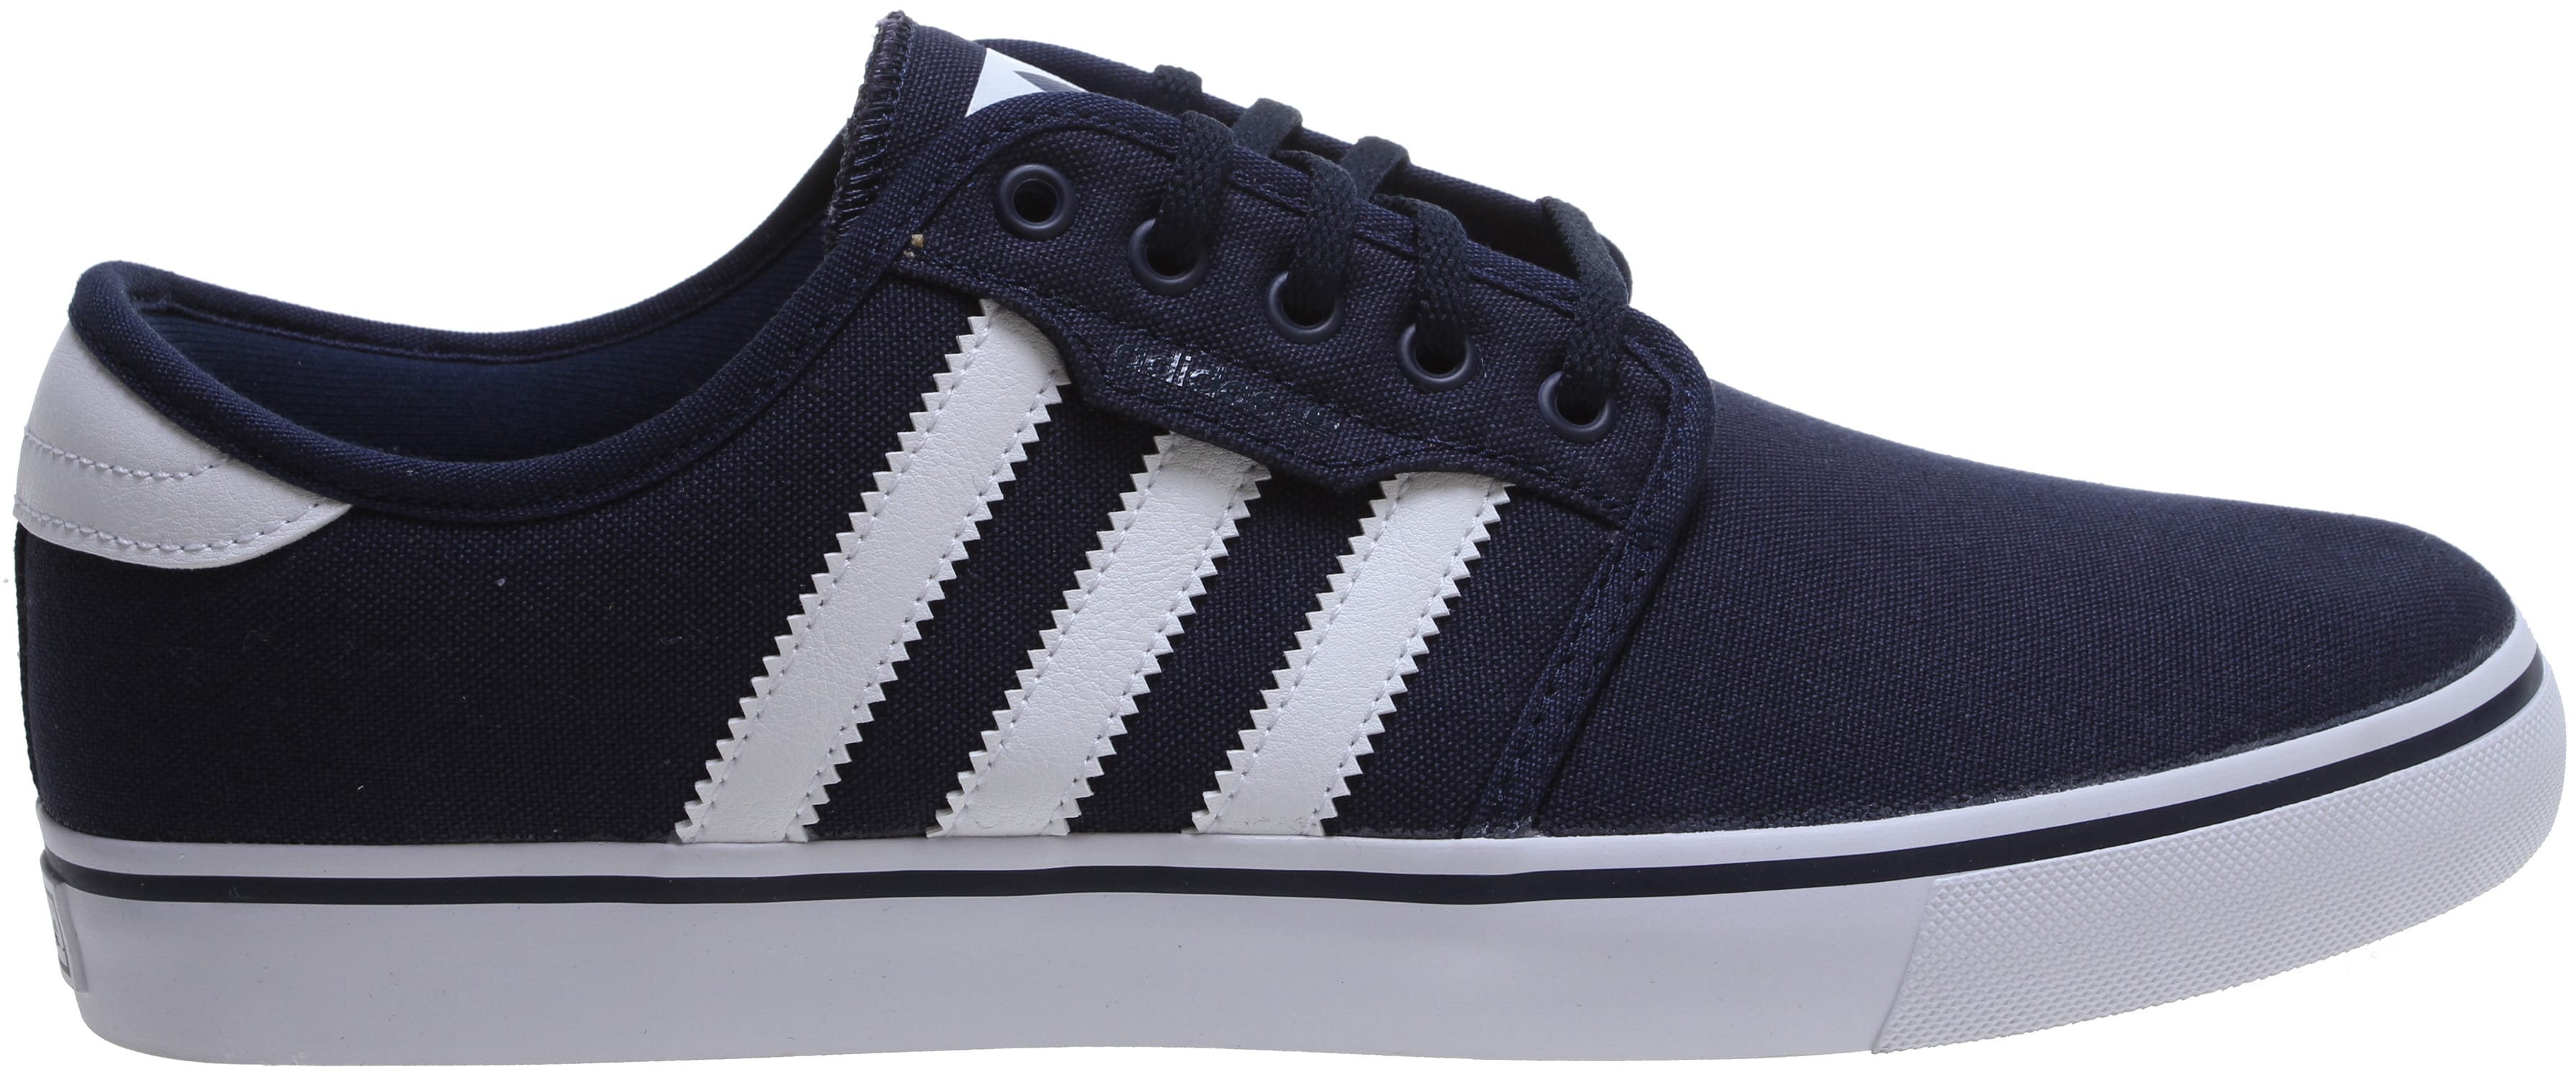 Adidas Seeley Mens Skate Shoes